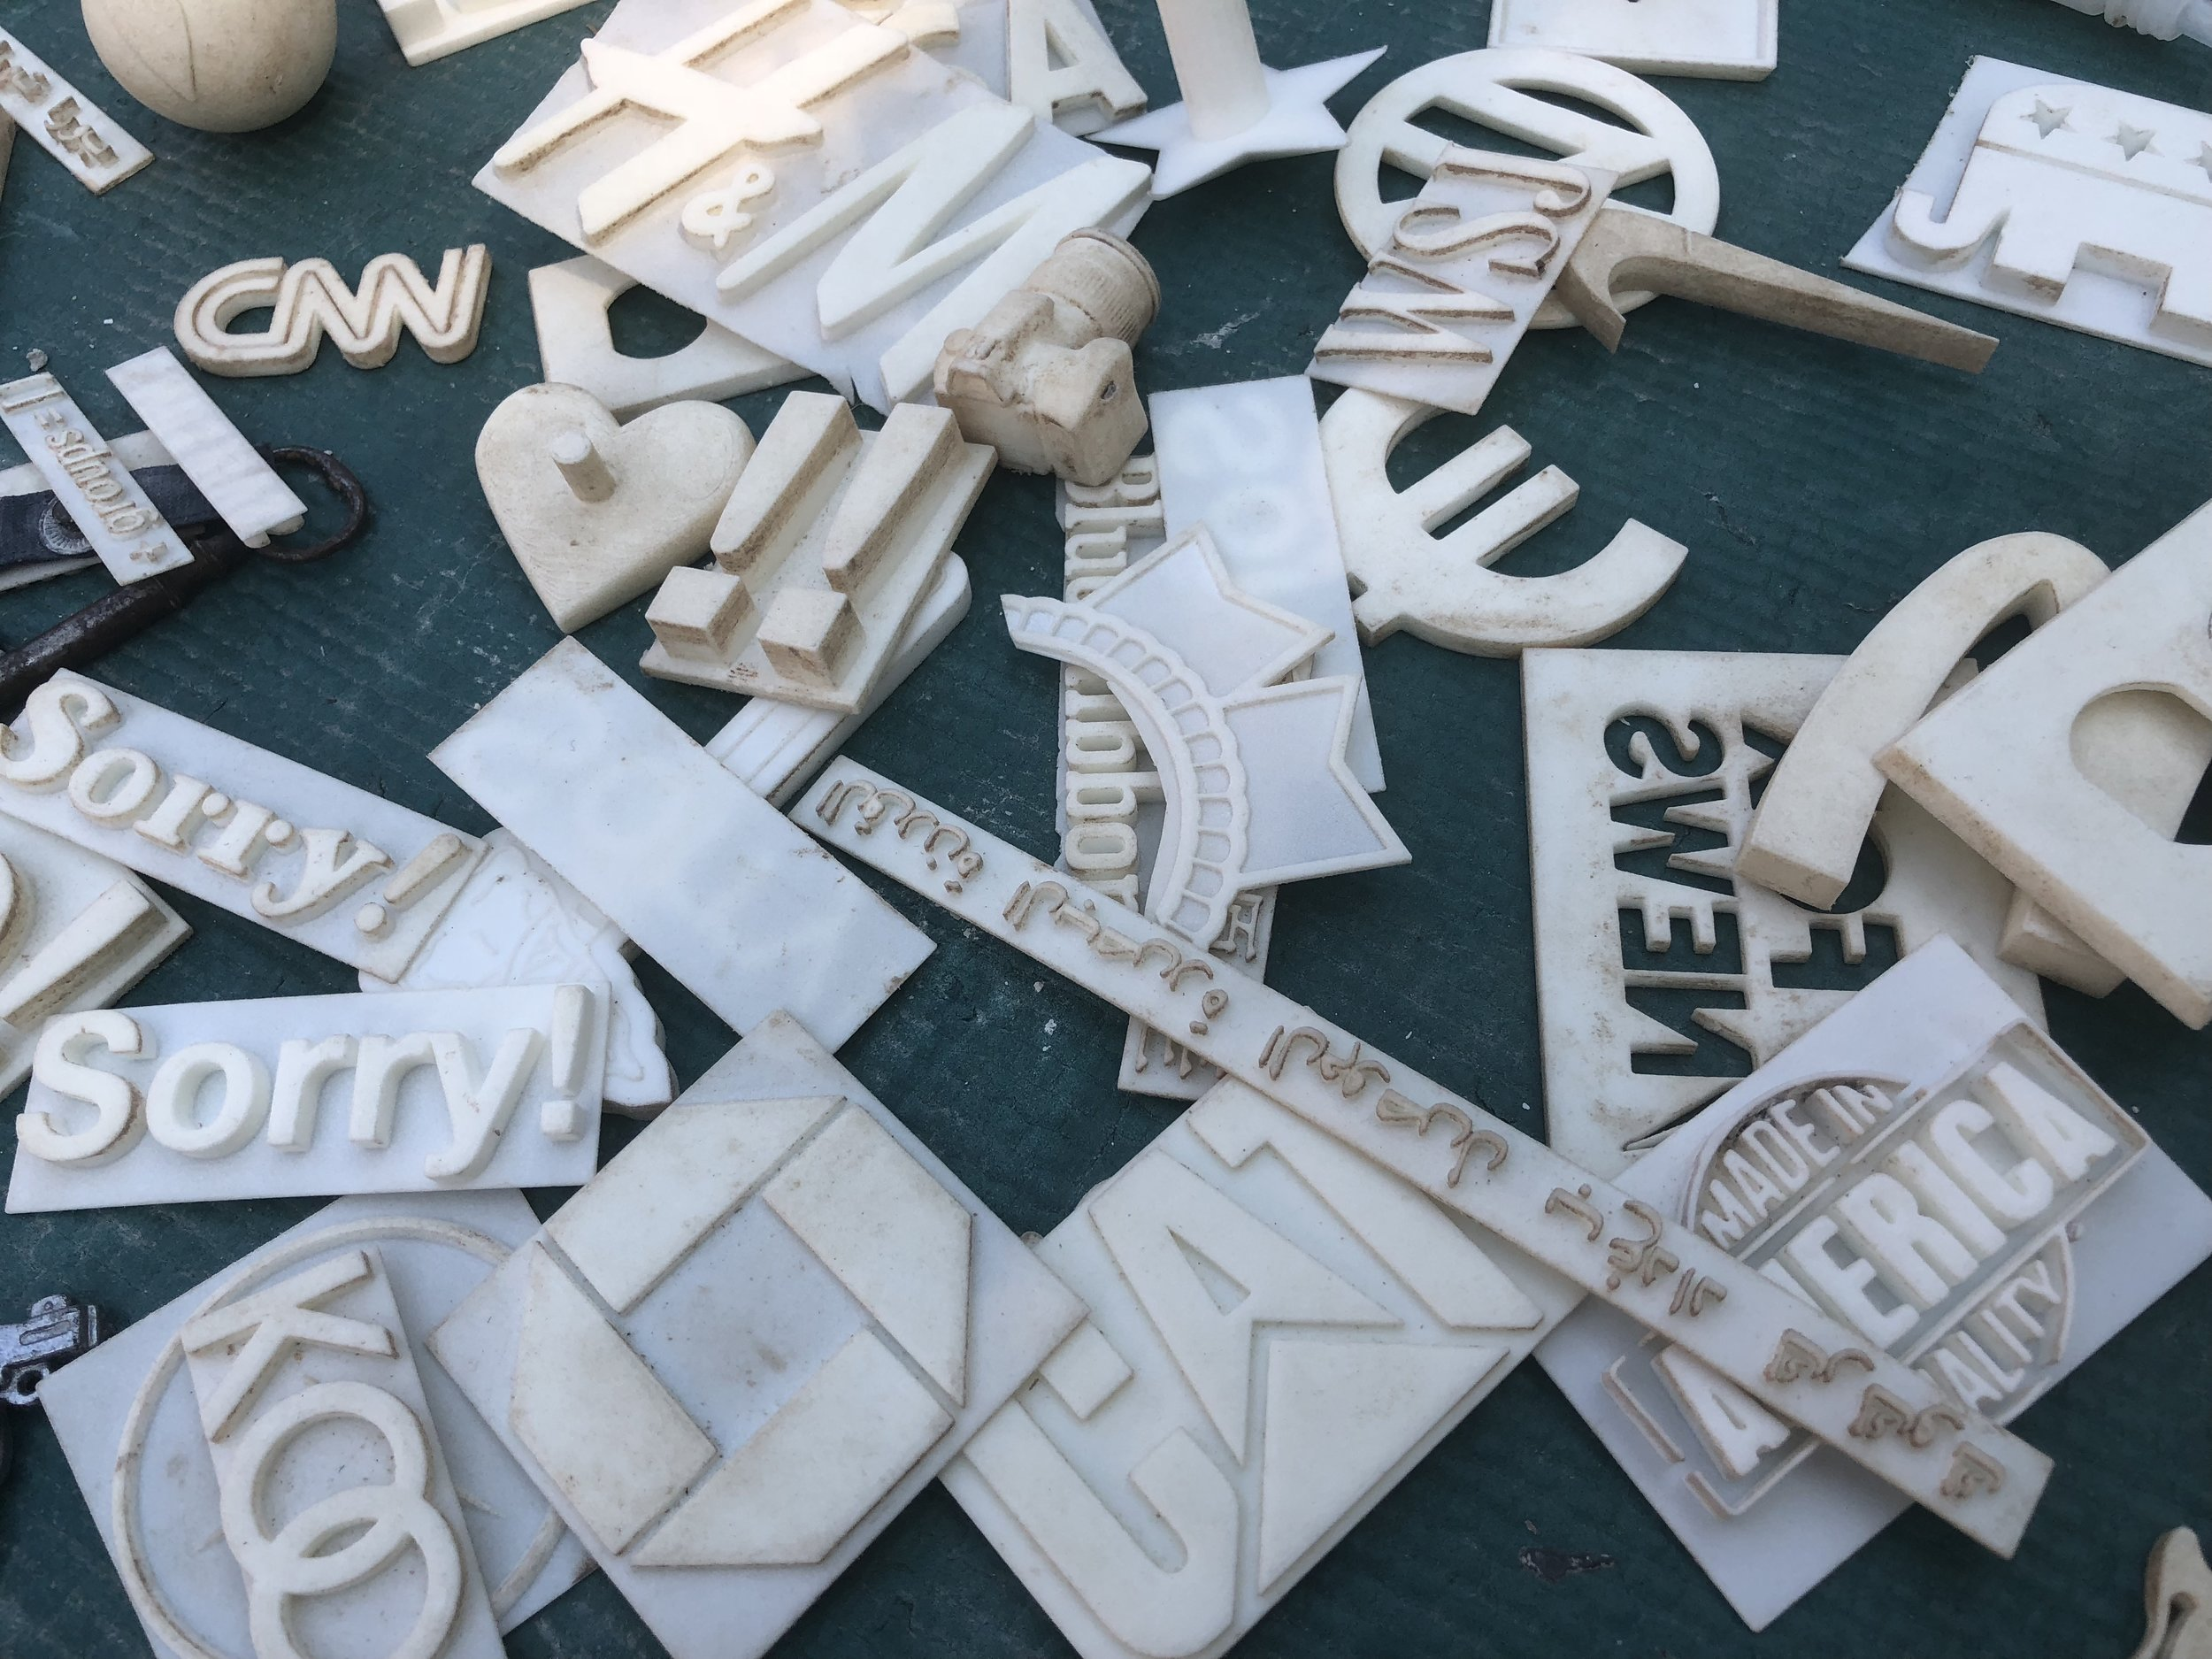 Some  3-d printed logos and other cultural elements laid out in Bob's studio.  Bob creates these works in a 3-d modeling program then prints them on a 3-d printer for imprinting into clay for inclusion in cast wall relief sculptures.